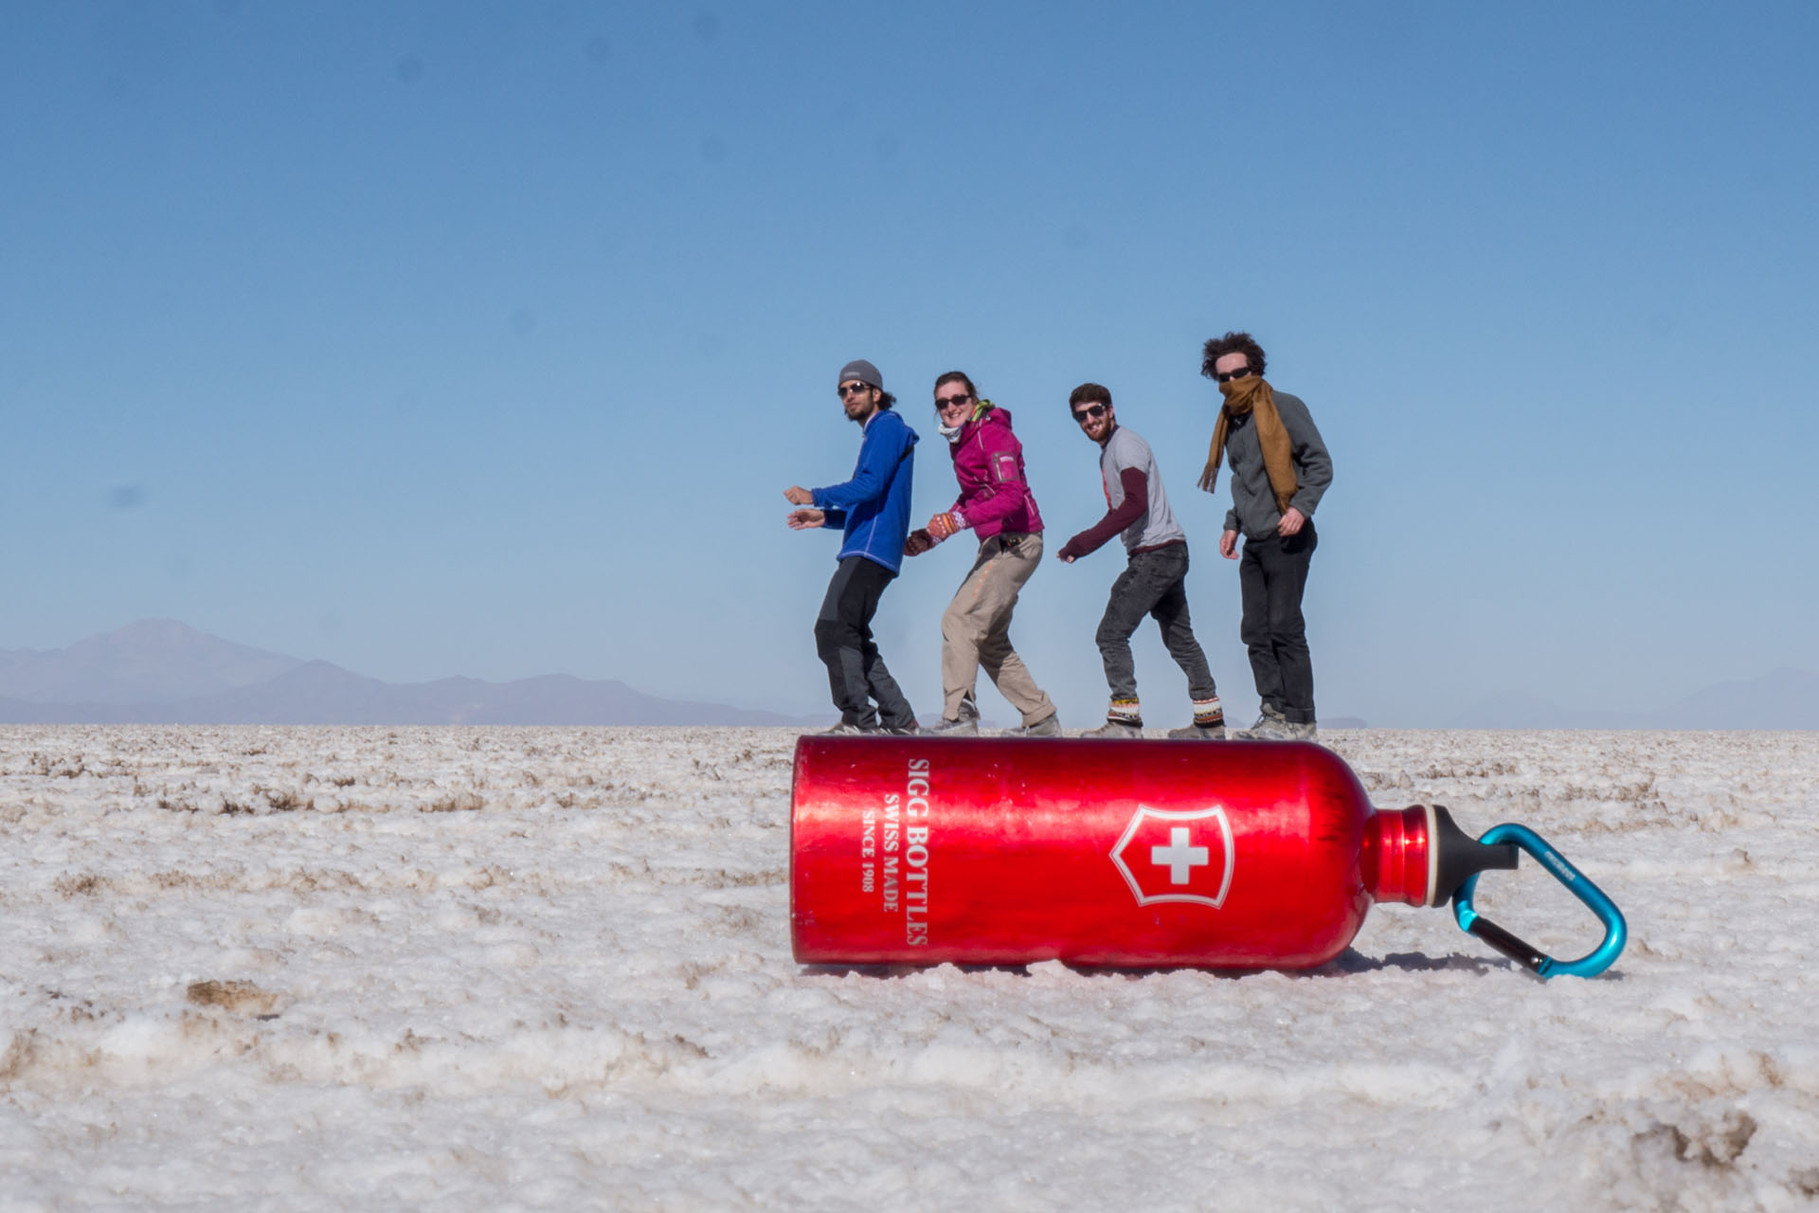 Typical tourist picture at Salar de Uyuni